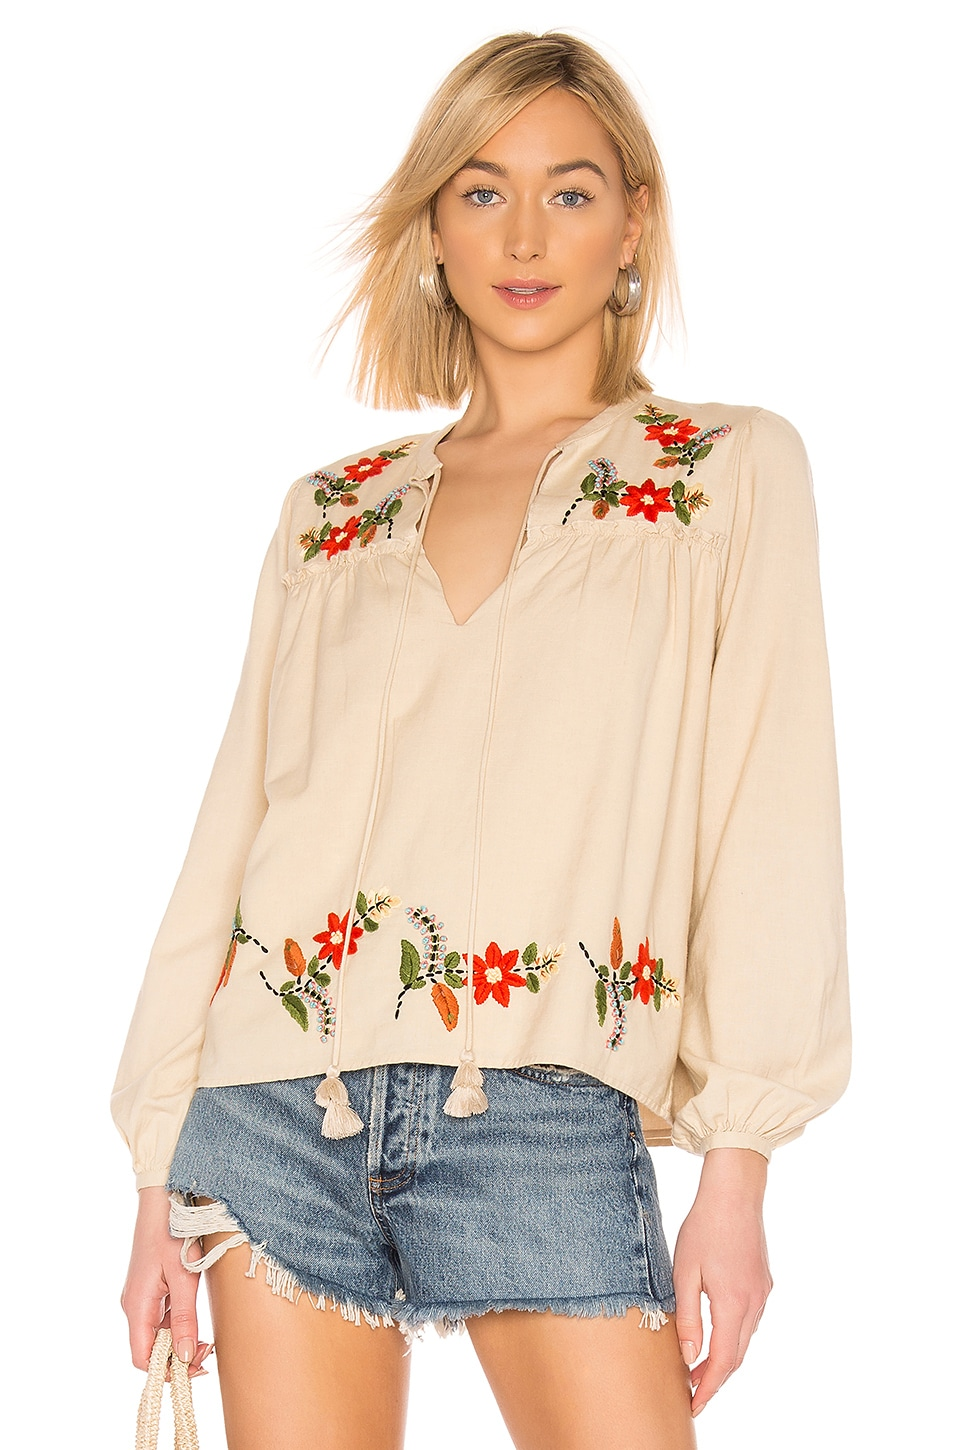 Tularosa Penelope Top in Natural Ivory